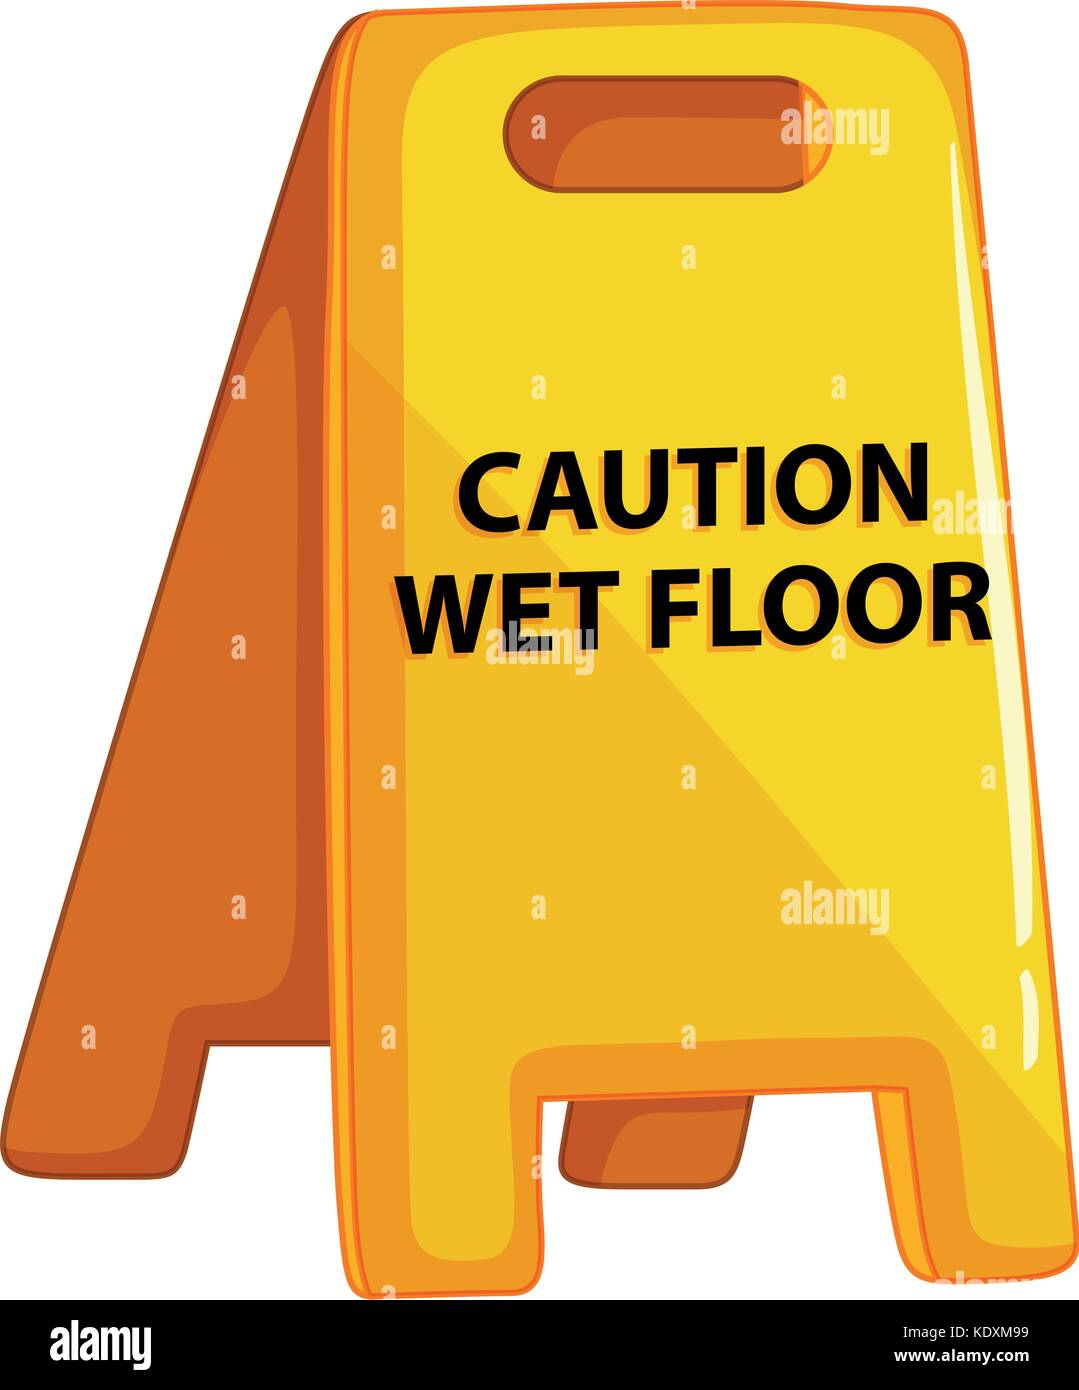 Caution wet floor sign on white background illustration - Stock Vector